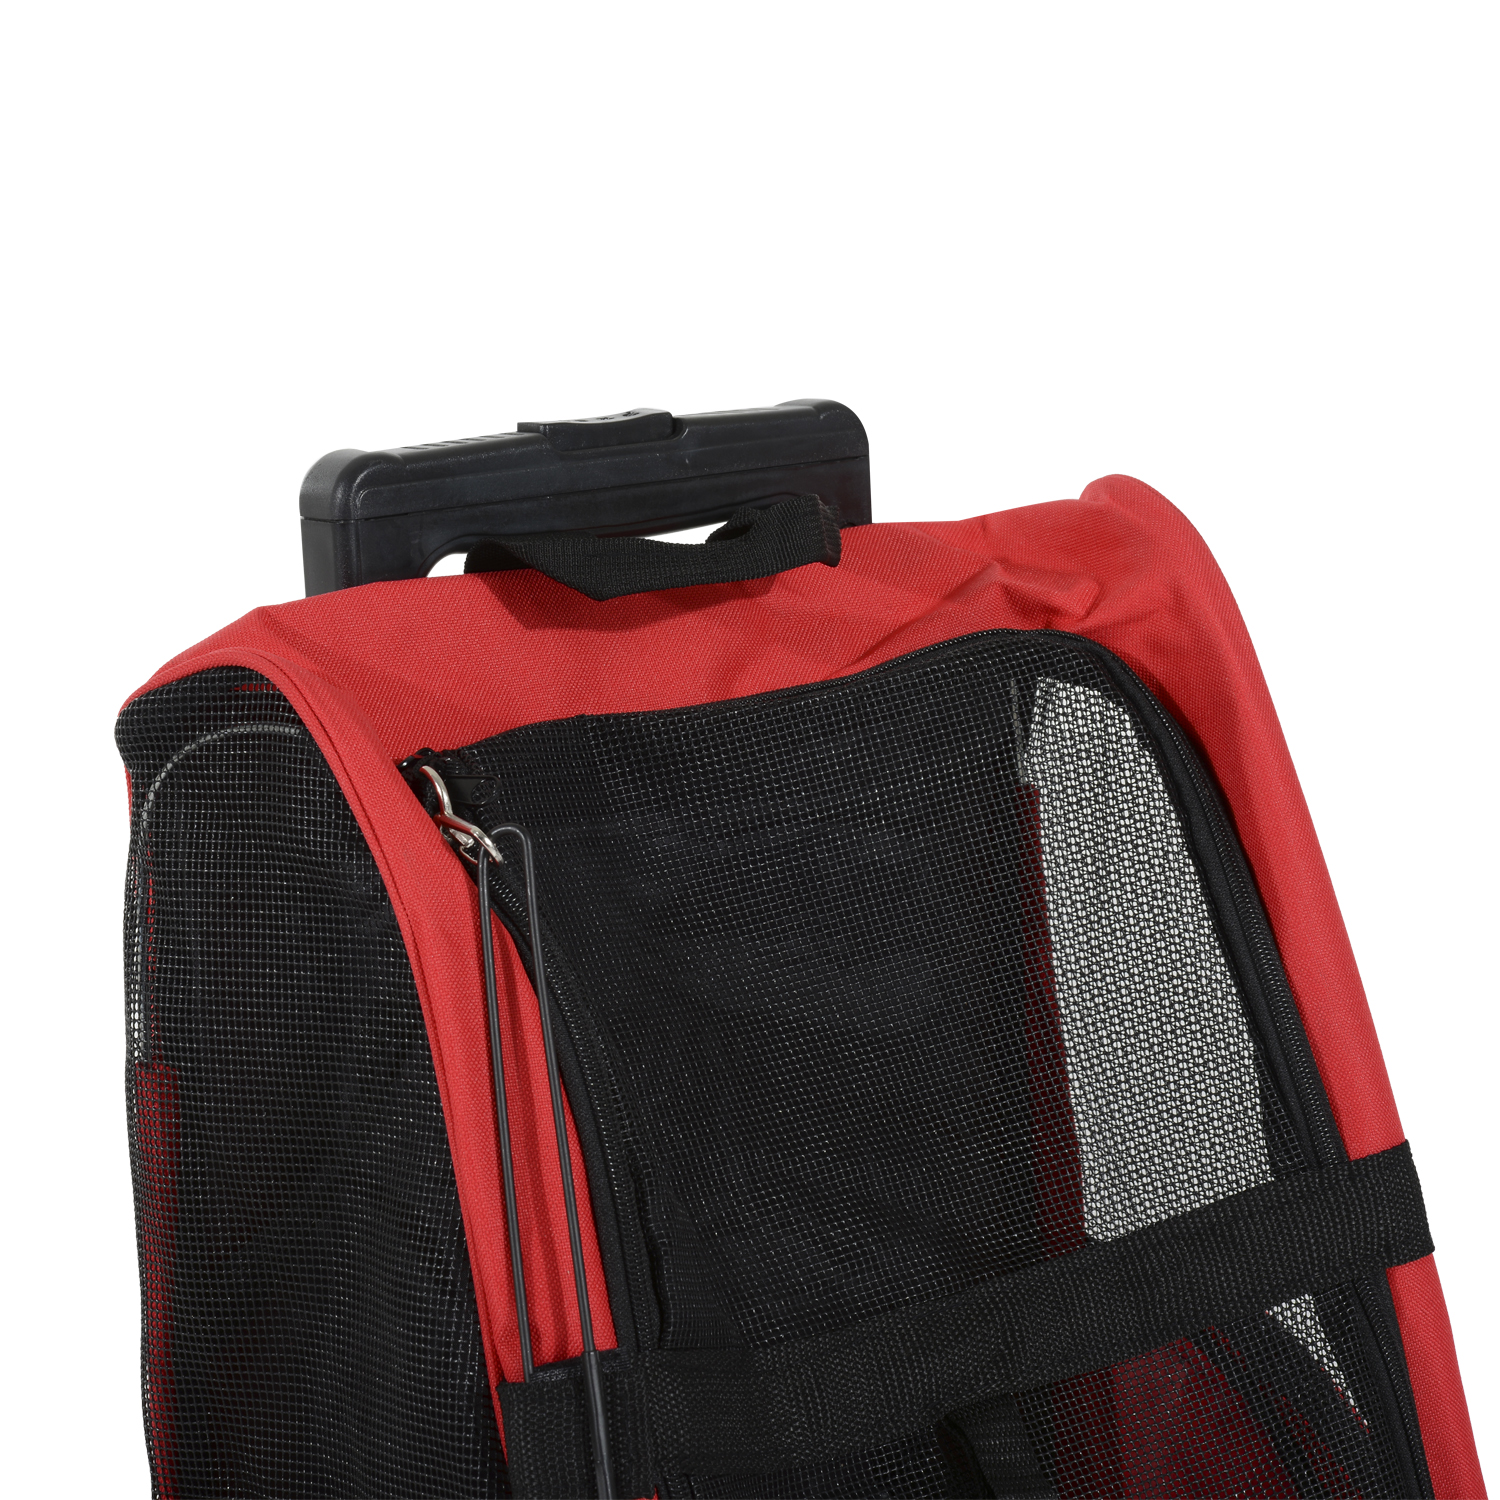 PawHut-4in1-Pet-Backpack-Carrier-Car-seat-Dog-Cat-Rolling-Luggage-Crates